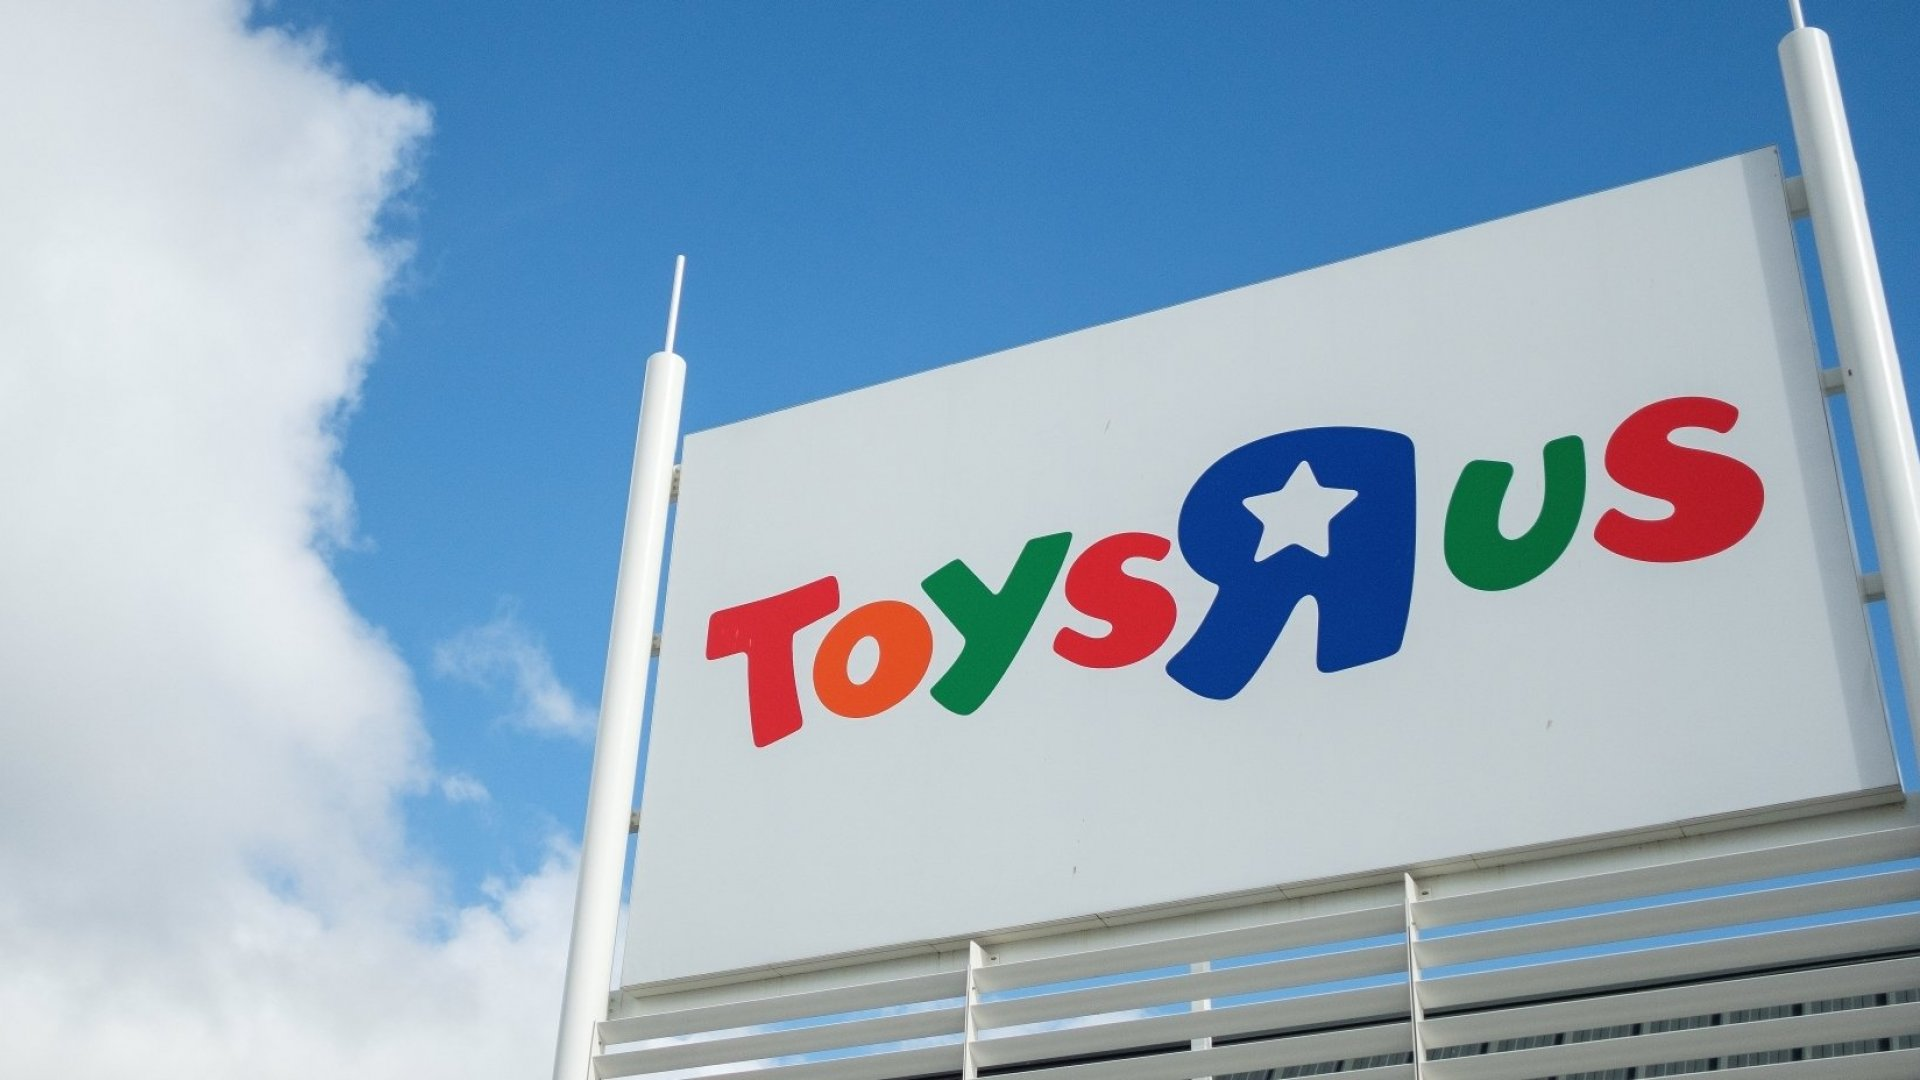 This Billionaire's Plan to Save Toys 'R' Us Starts With an $800 Million GoFundMe Campaign